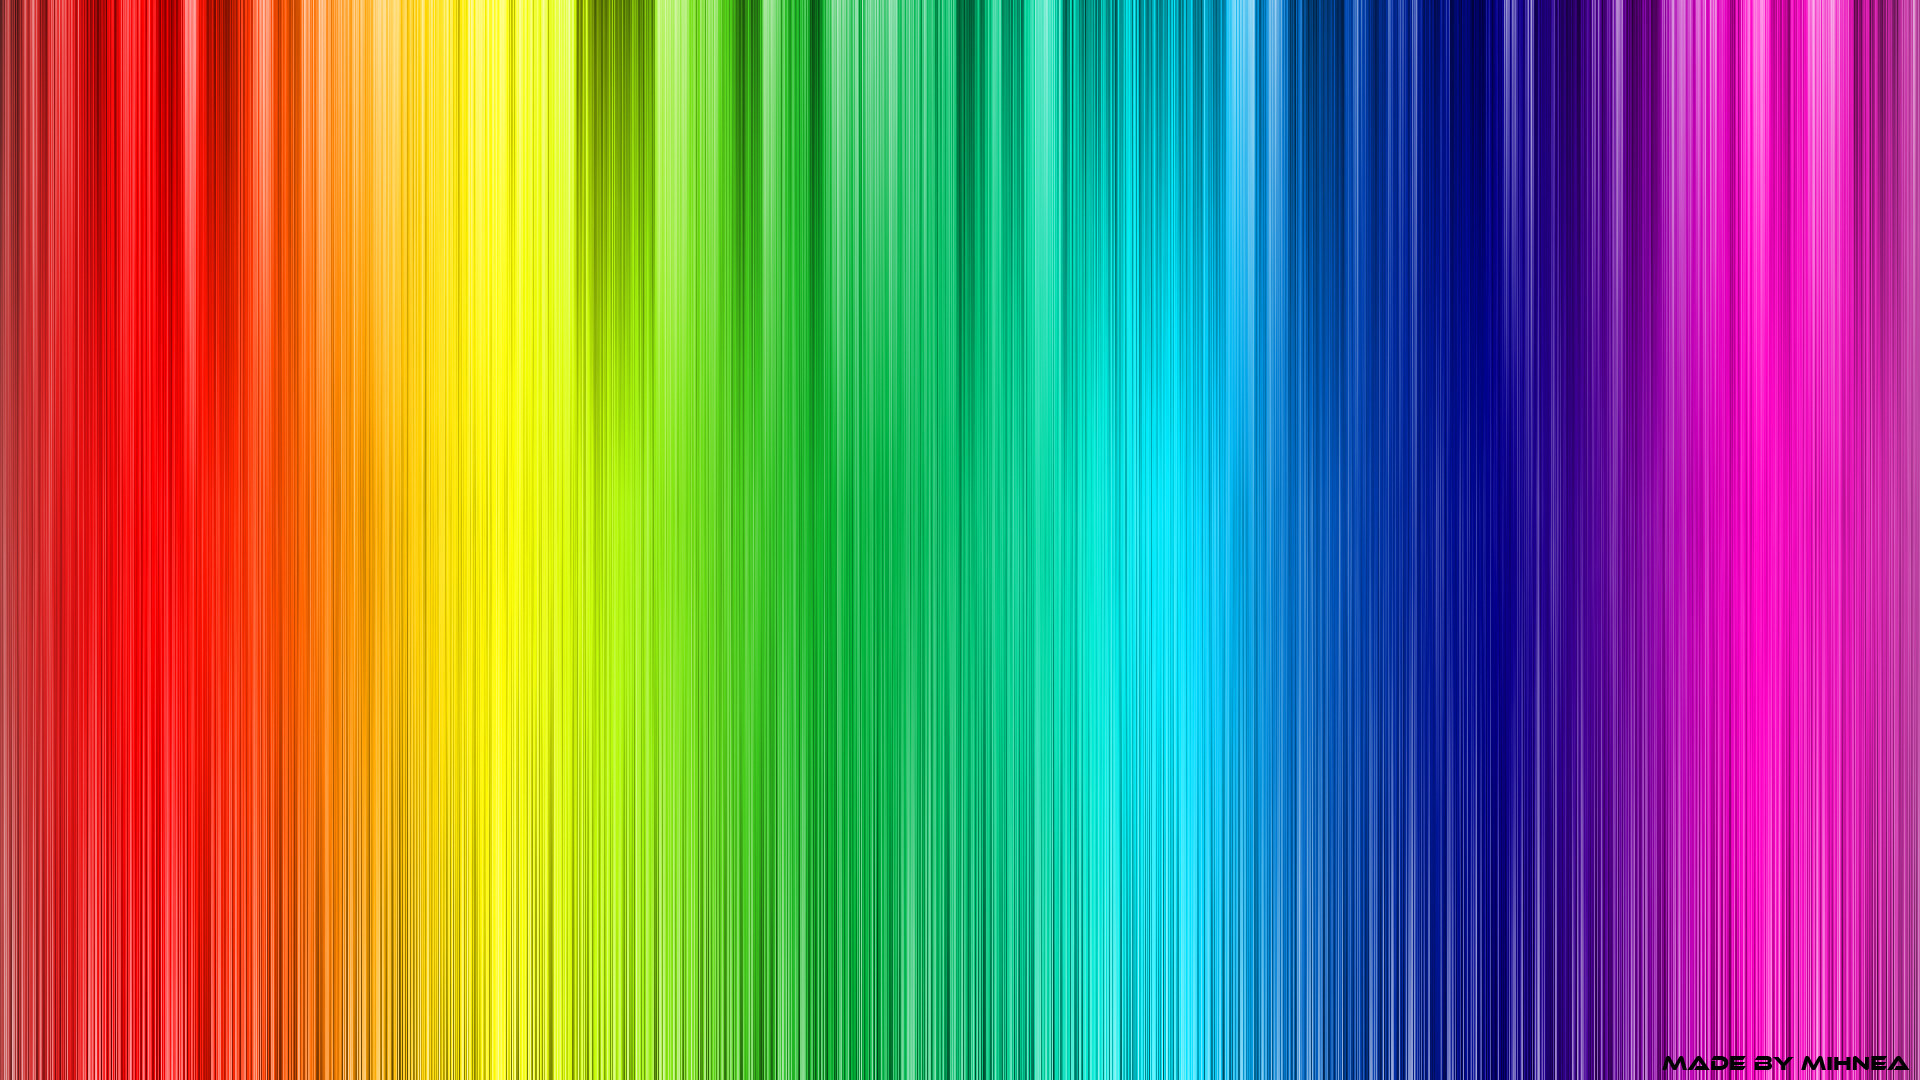 Multi Colored Wallpaper 75 Images HD Wallpapers Download Free Images Wallpaper [1000image.com]